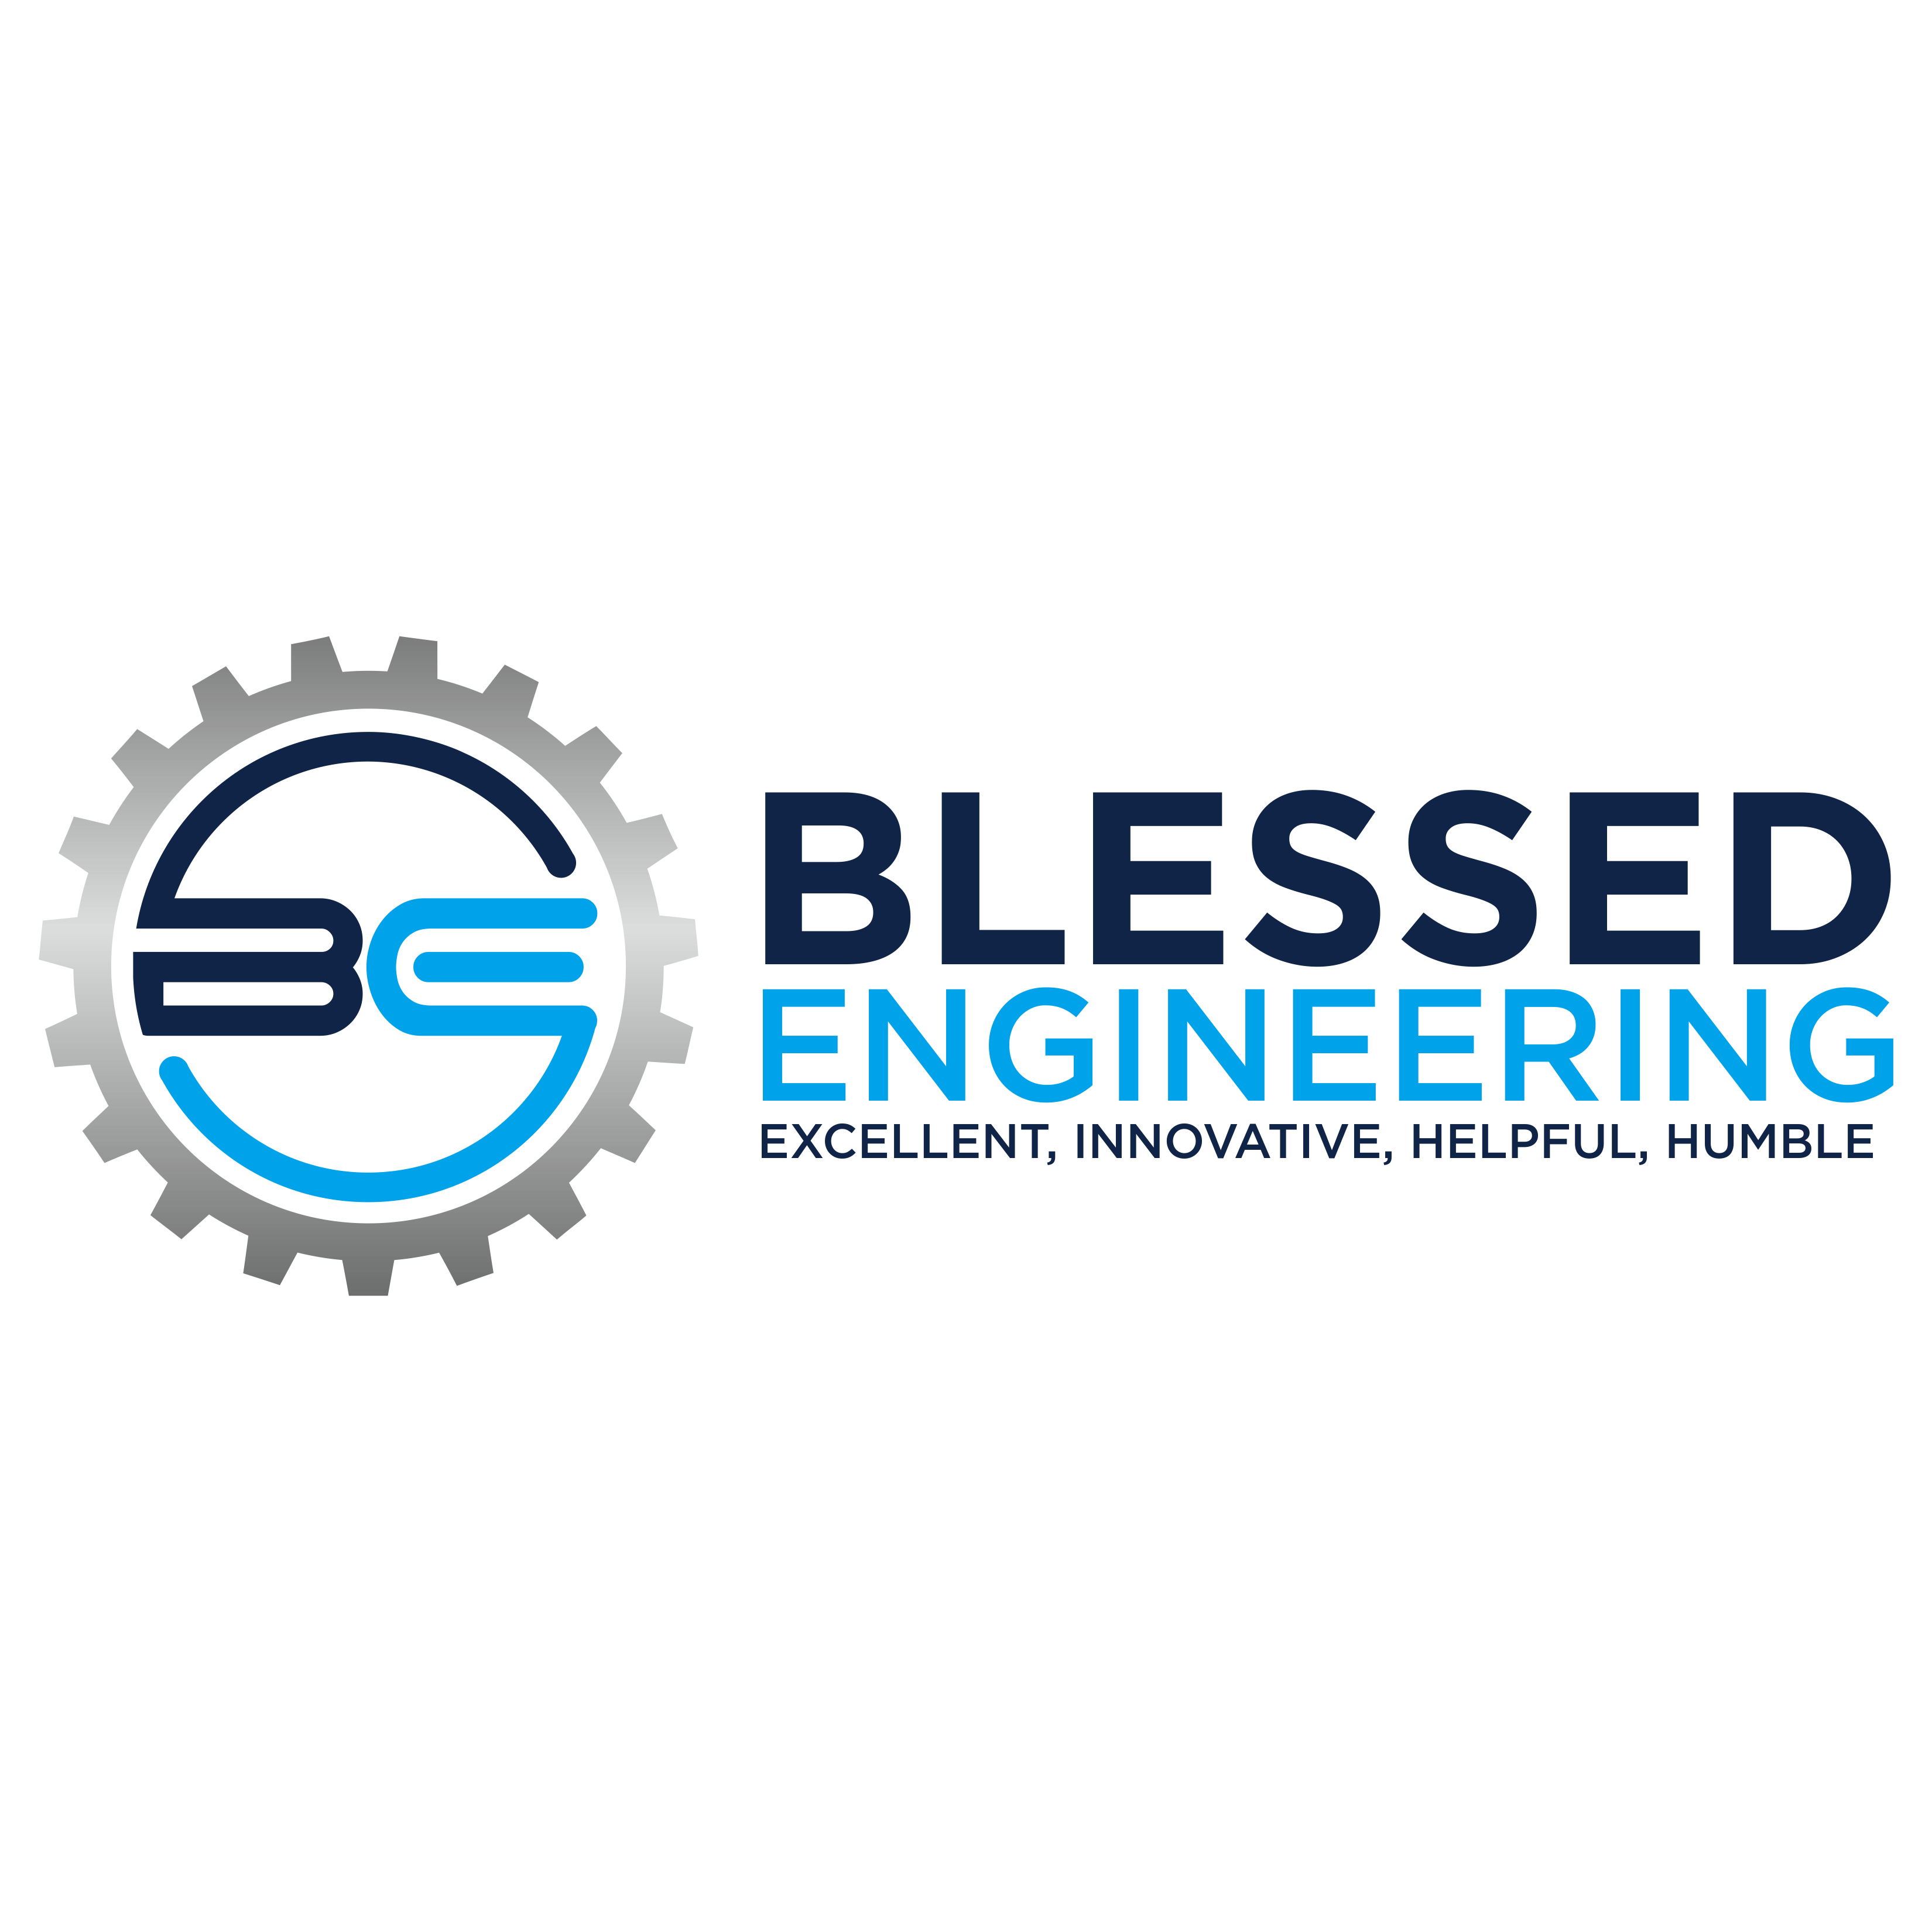 Help Blessed Engineering make the world a better place!